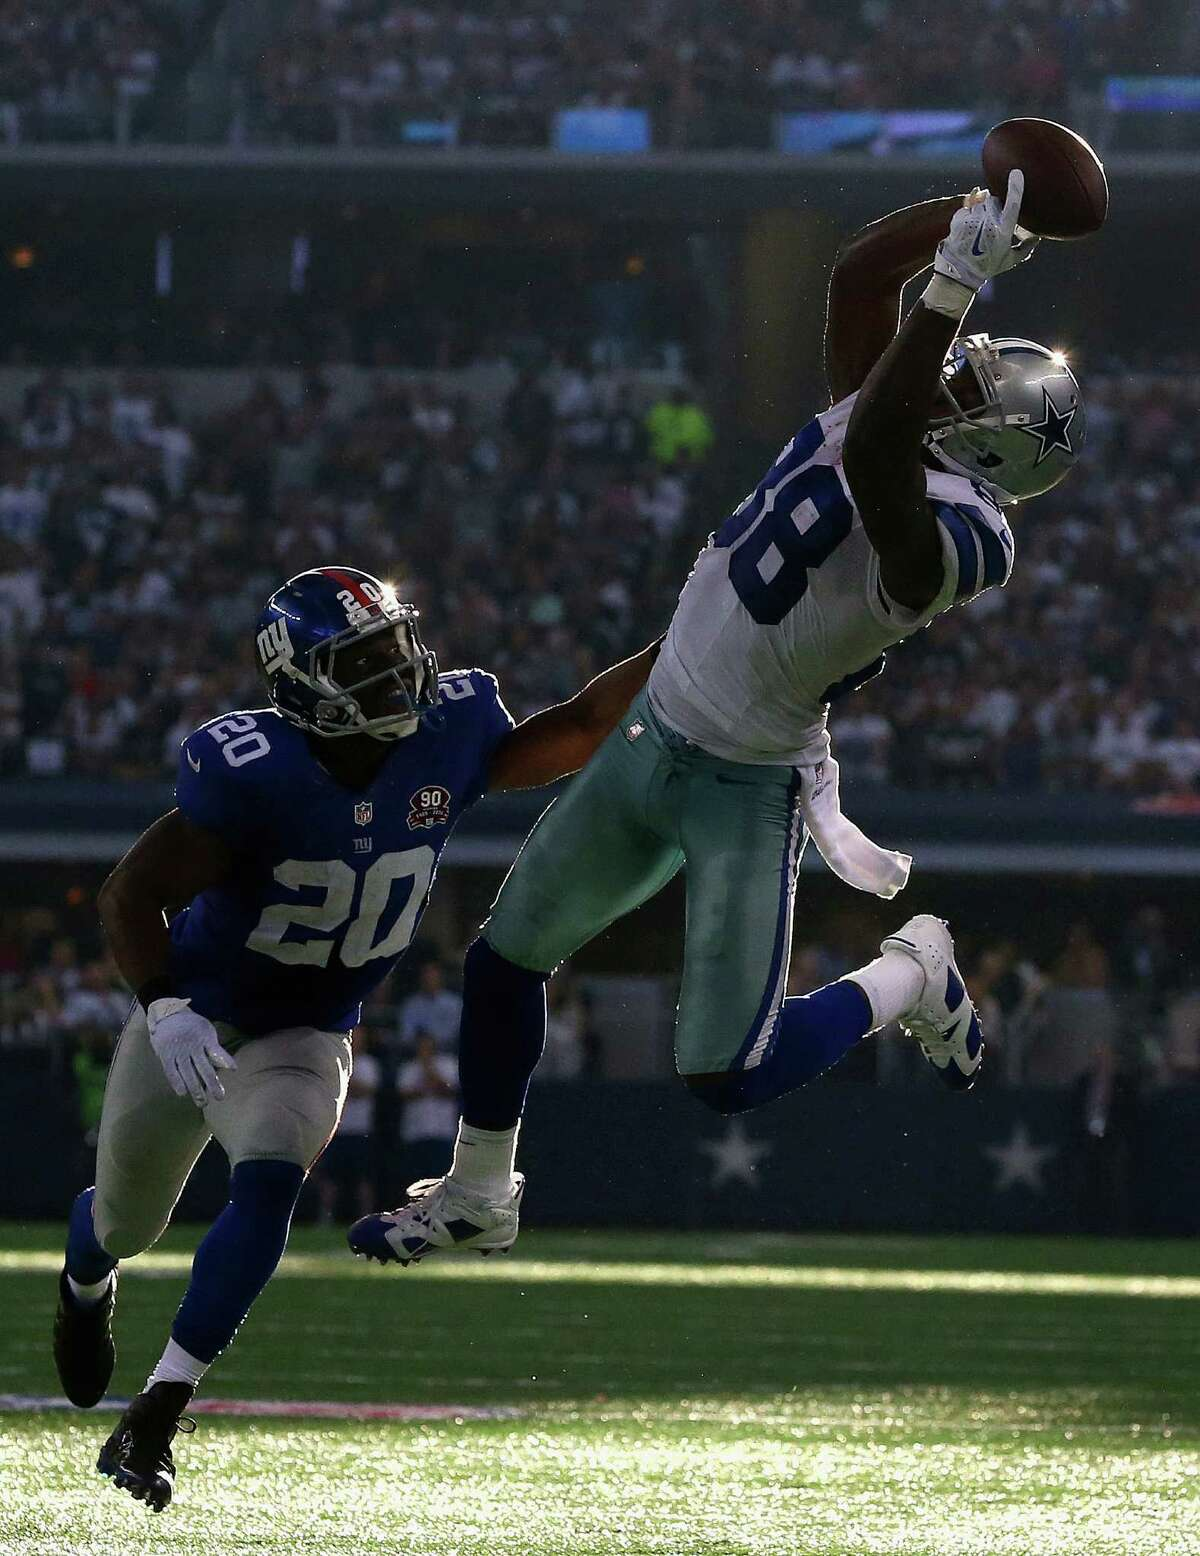 ARLINGTON, TX - OCTOBER 19: Dez Bryant #88 of the Dallas Cowboys makes a pass reception against Prince Amukamara #20 of the New York Giants in the fourth quarter at AT&T Stadium on October 19, 2014 in Arlington, Texas. (Photo by Ronald Martinez/Getty Images)